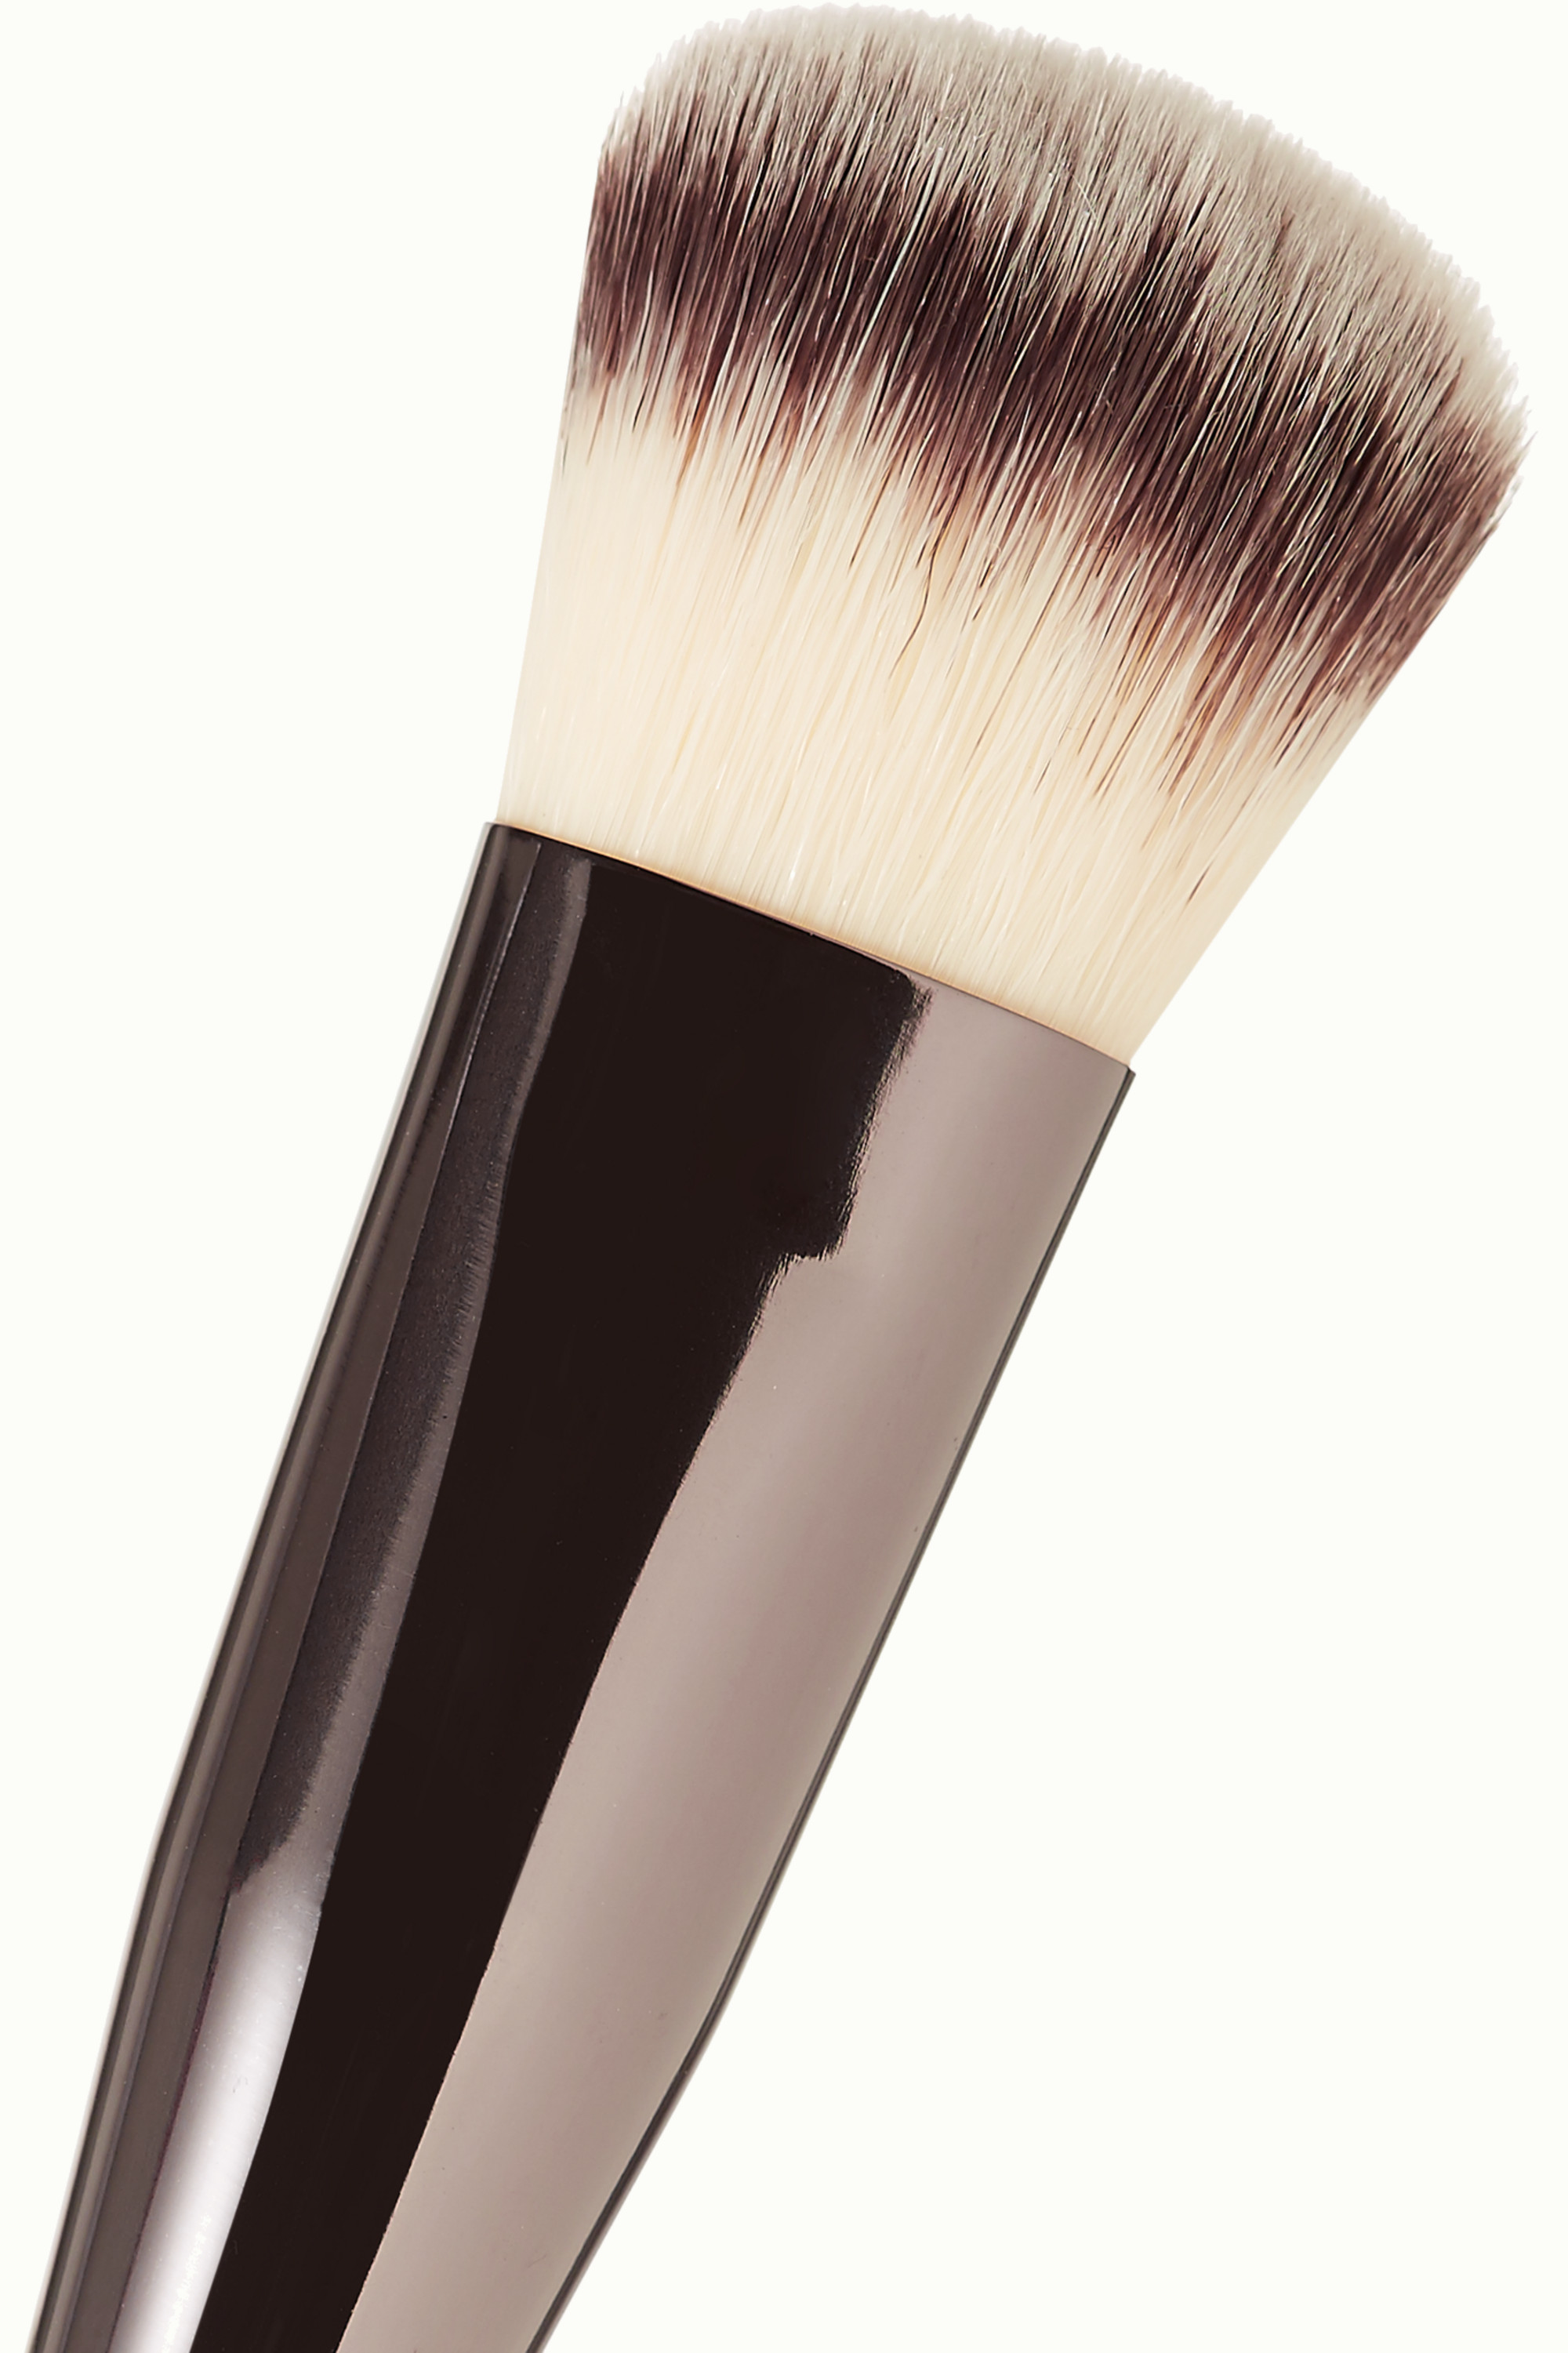 CHANTECAILLE Foundation and Mask Brush